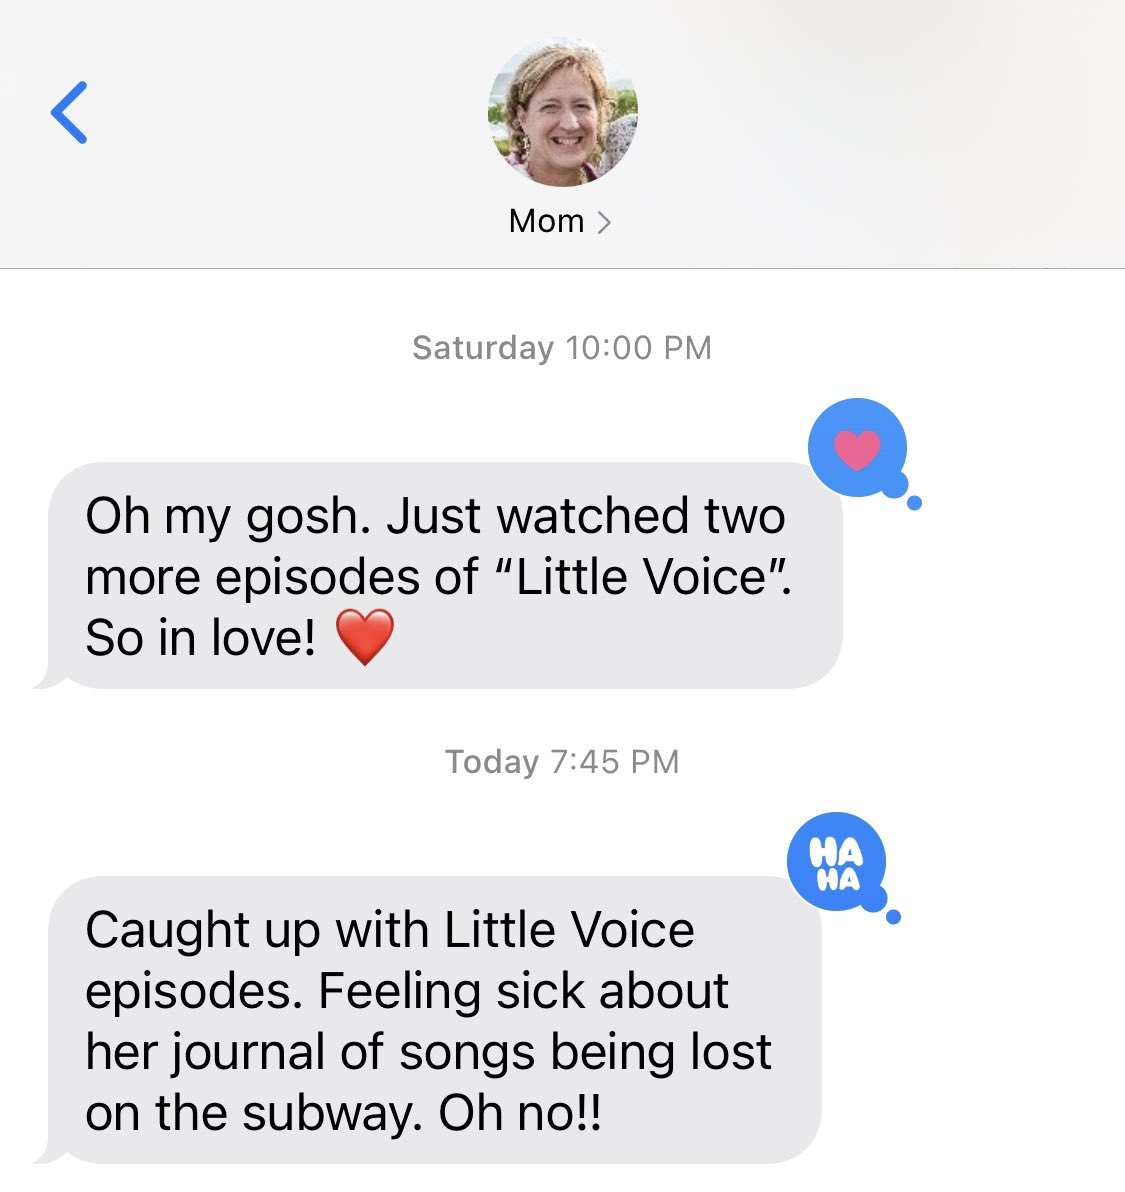 @SaraBareilles - mom is super invested in #LittleVoice https://t.co/eXh6DnelxT